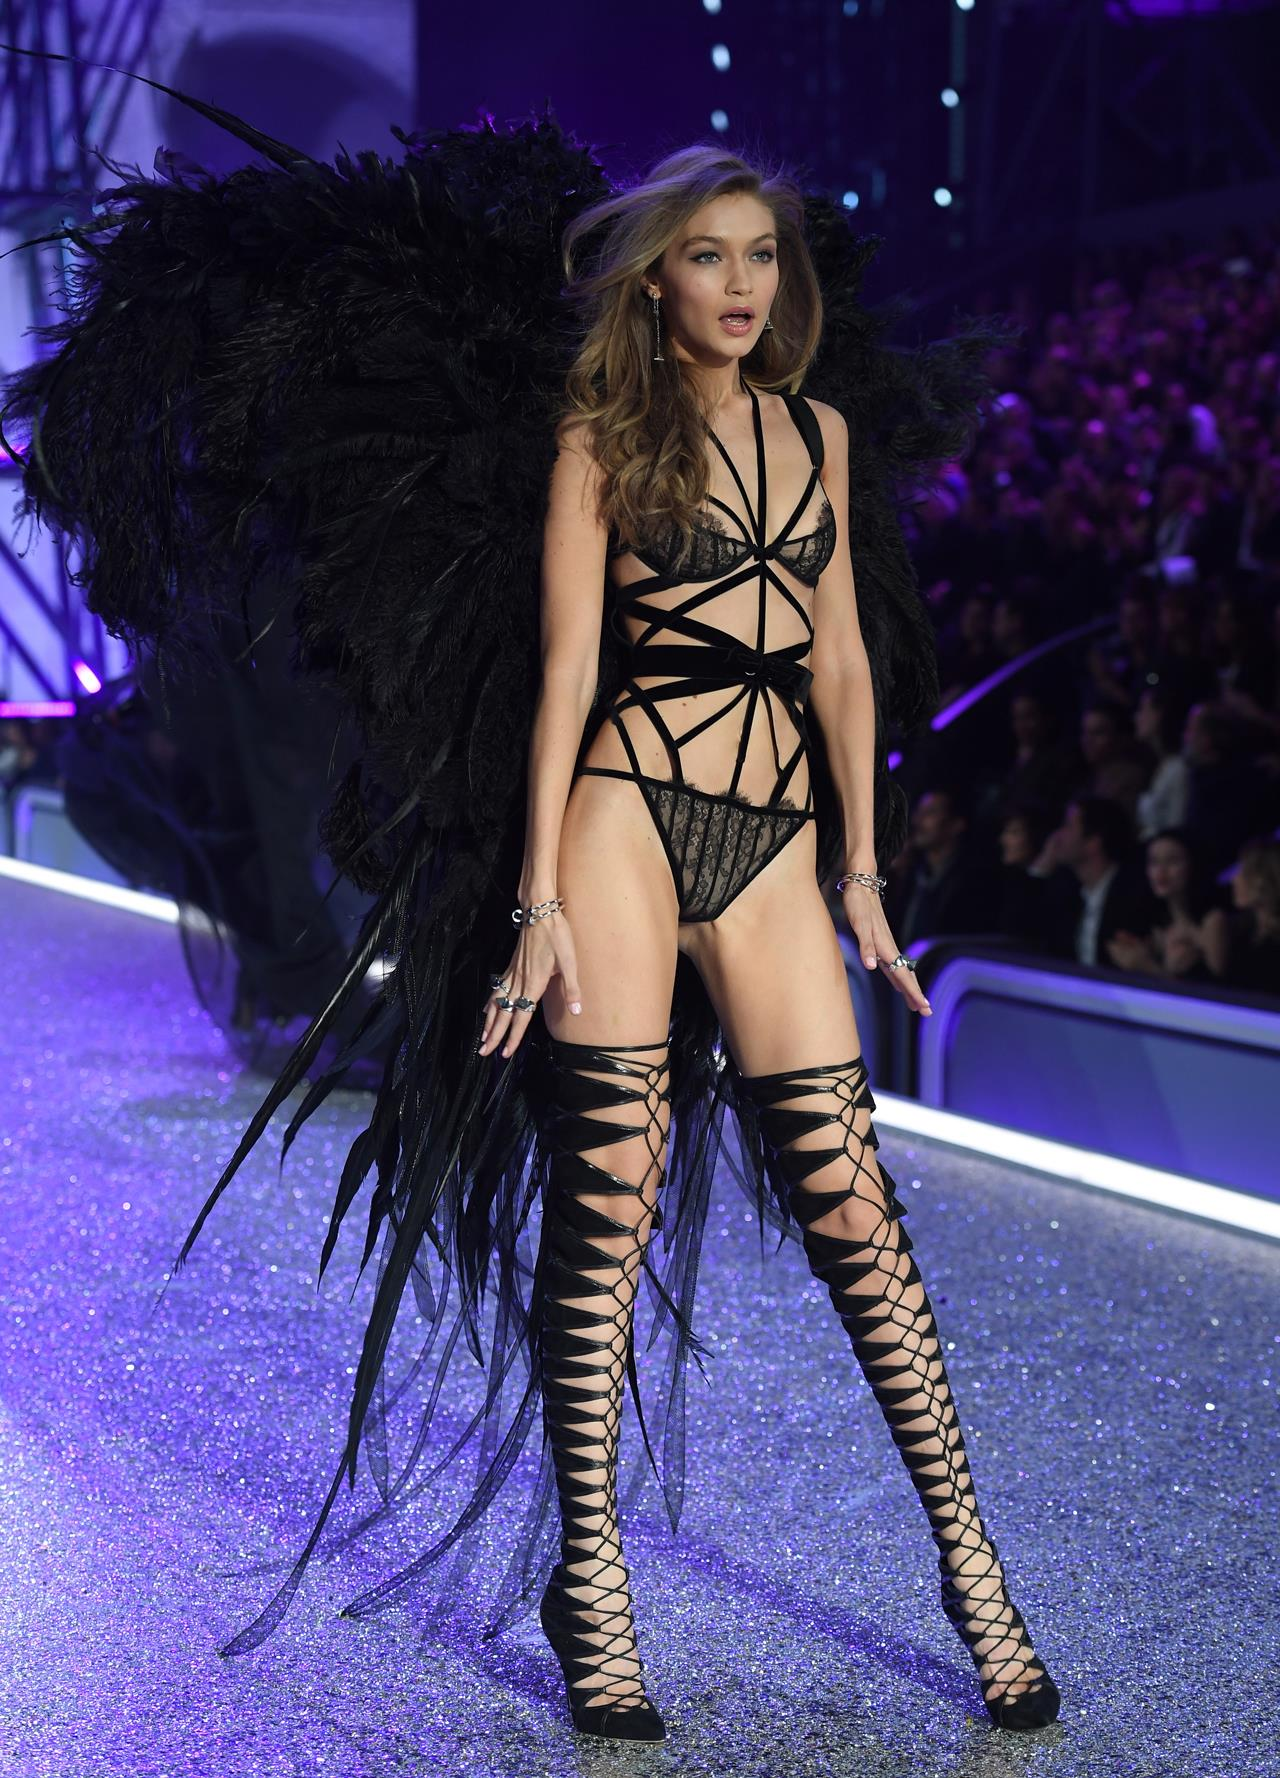 2016 Victorias Secret Fashion Show in Paris - Show